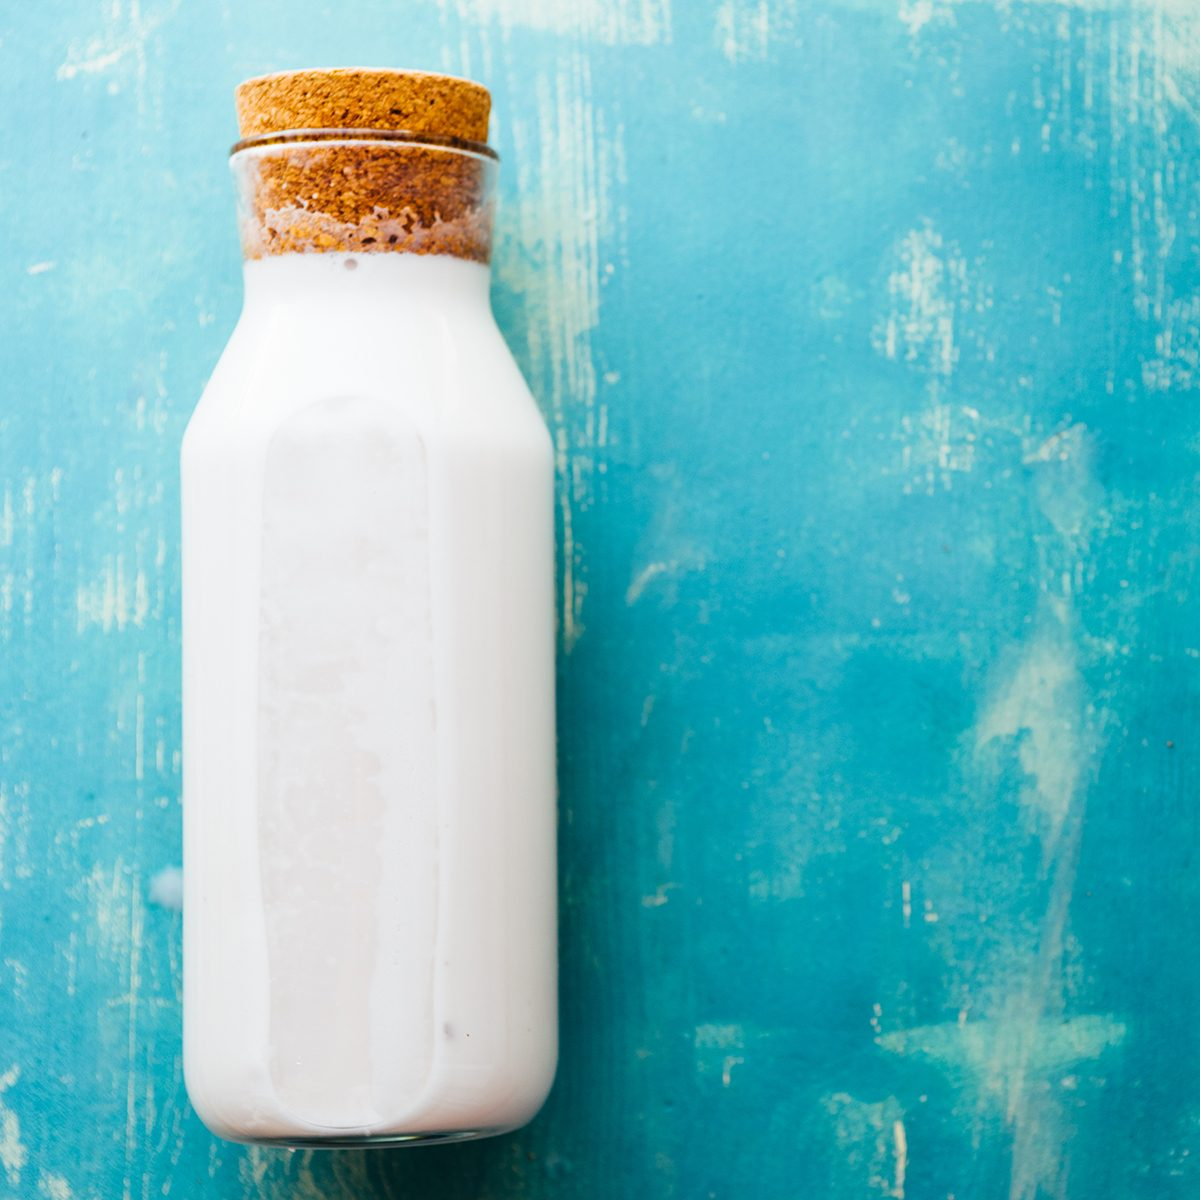 Top view of an Homemade coconut milk in a bottle, made after mixing coconut and water in a blender and pressed through a cotton sieve, over a rusty blue background